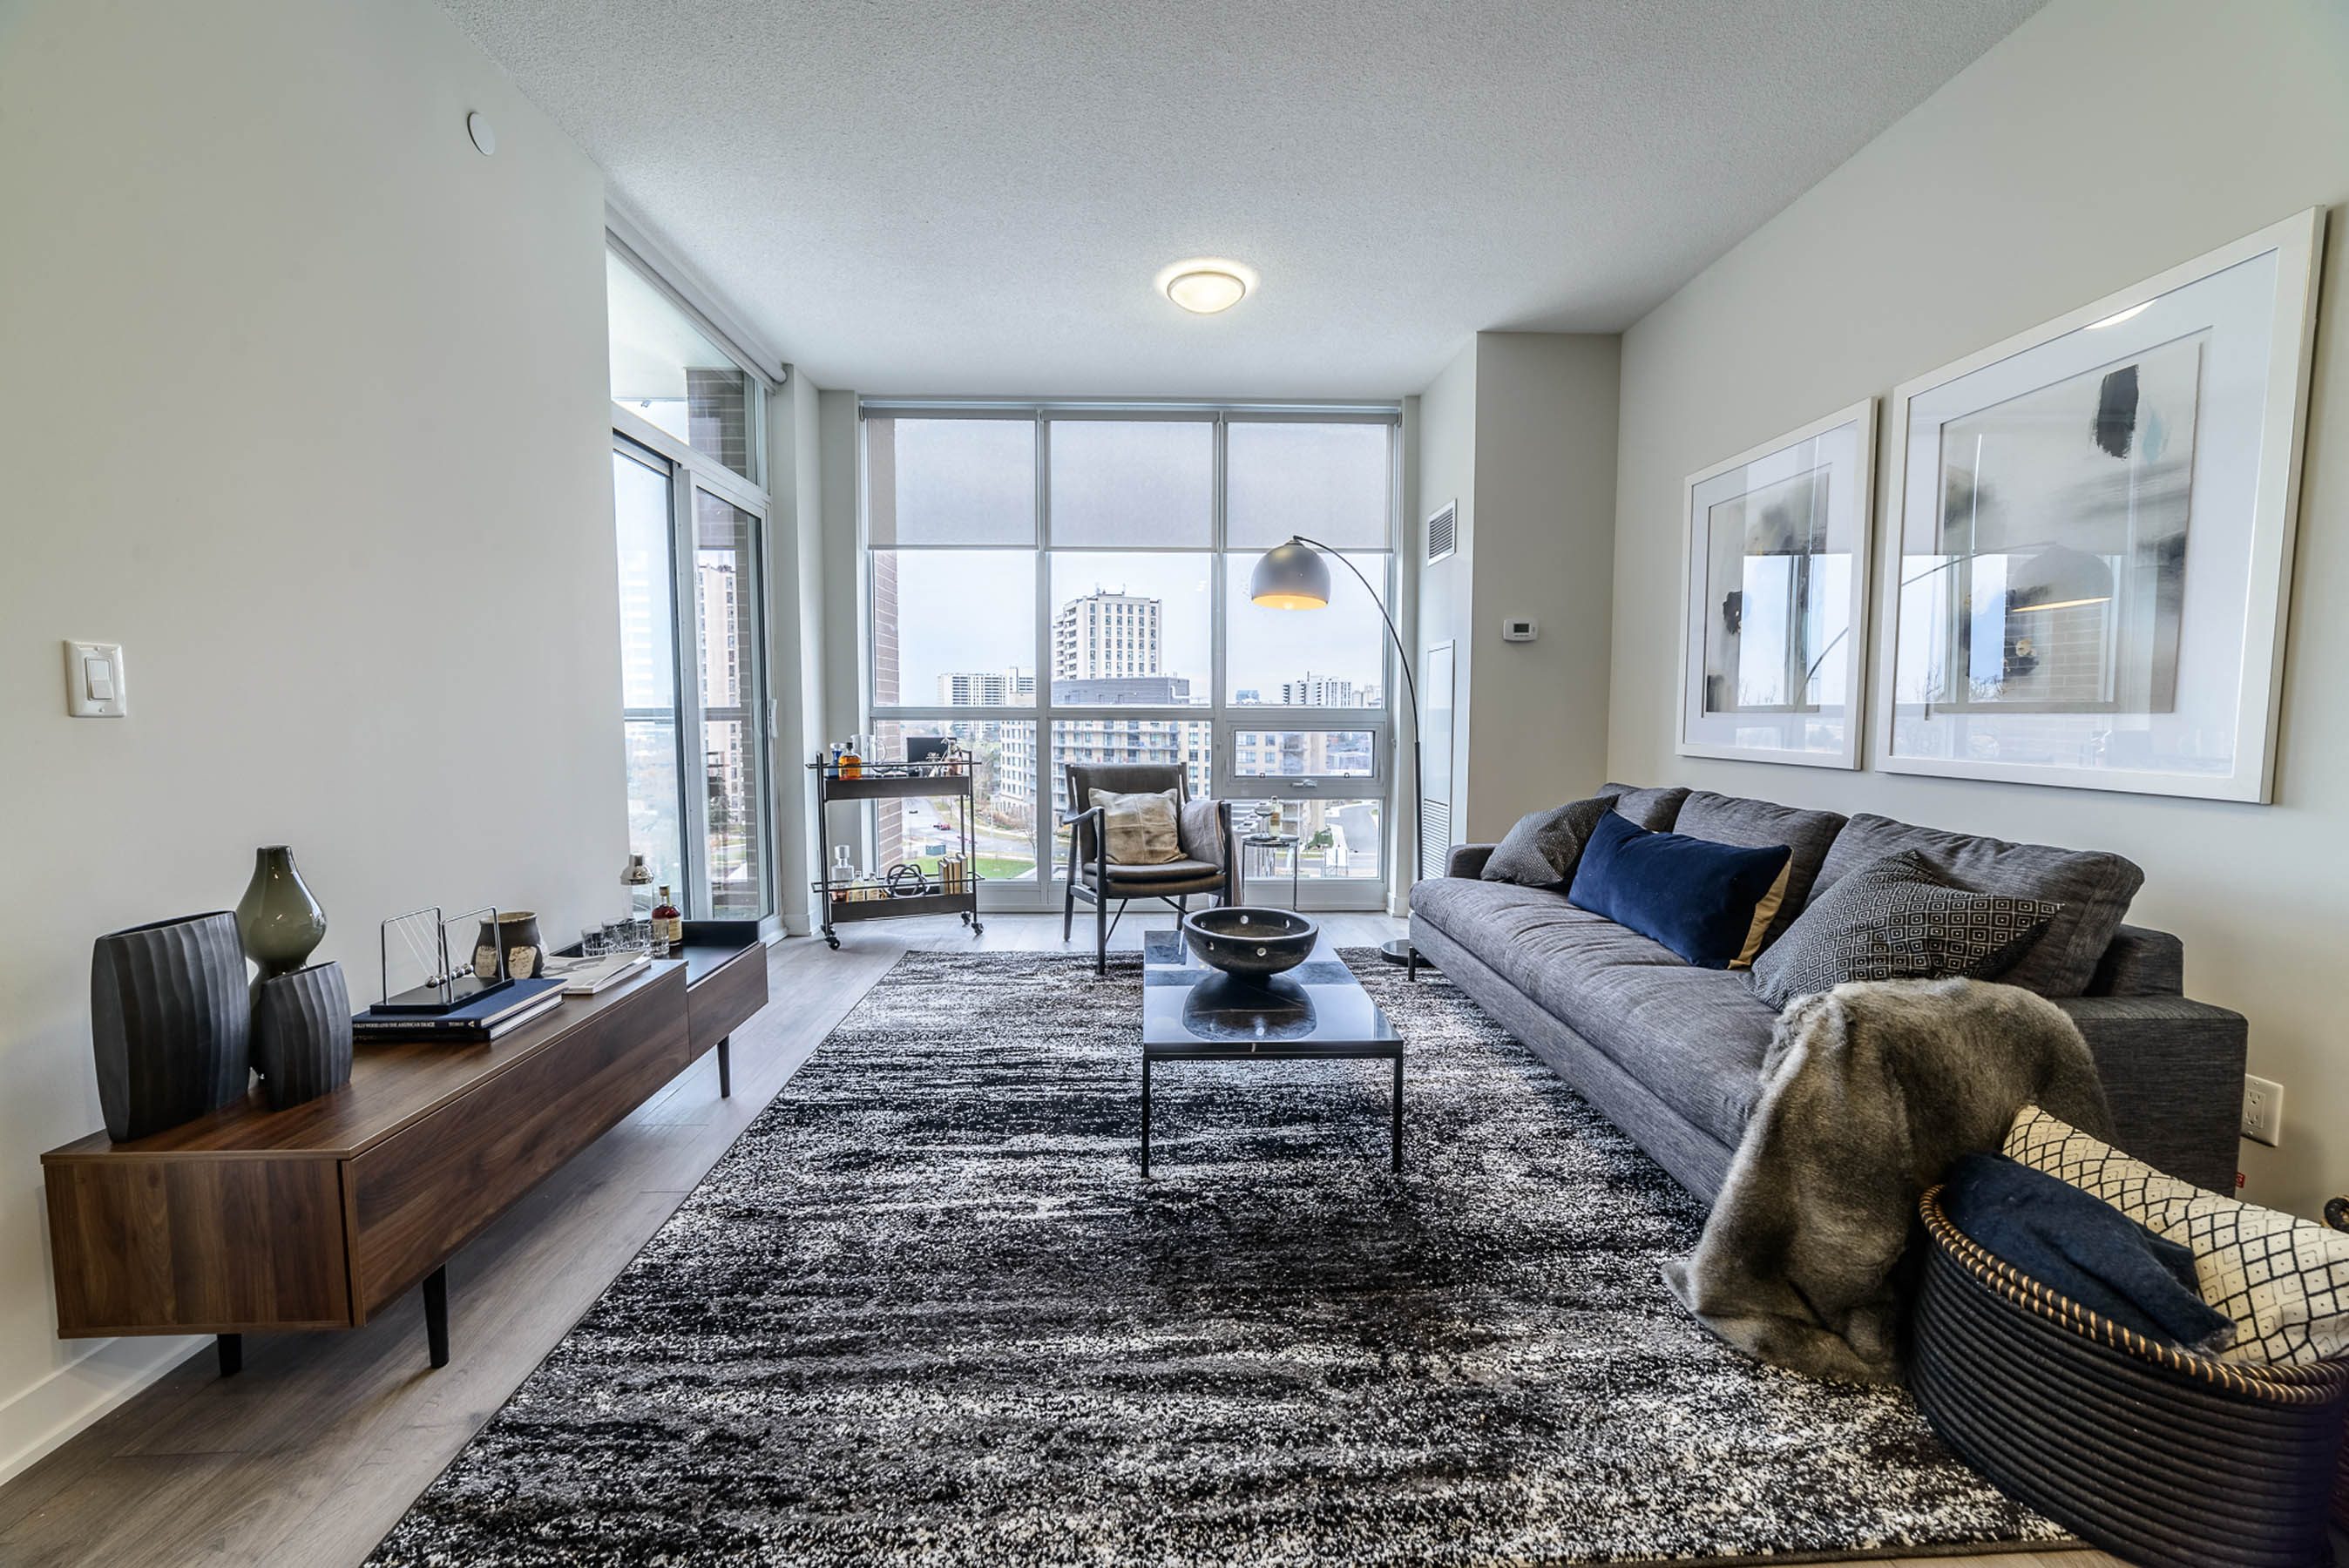 Flats to rent in toronto canada